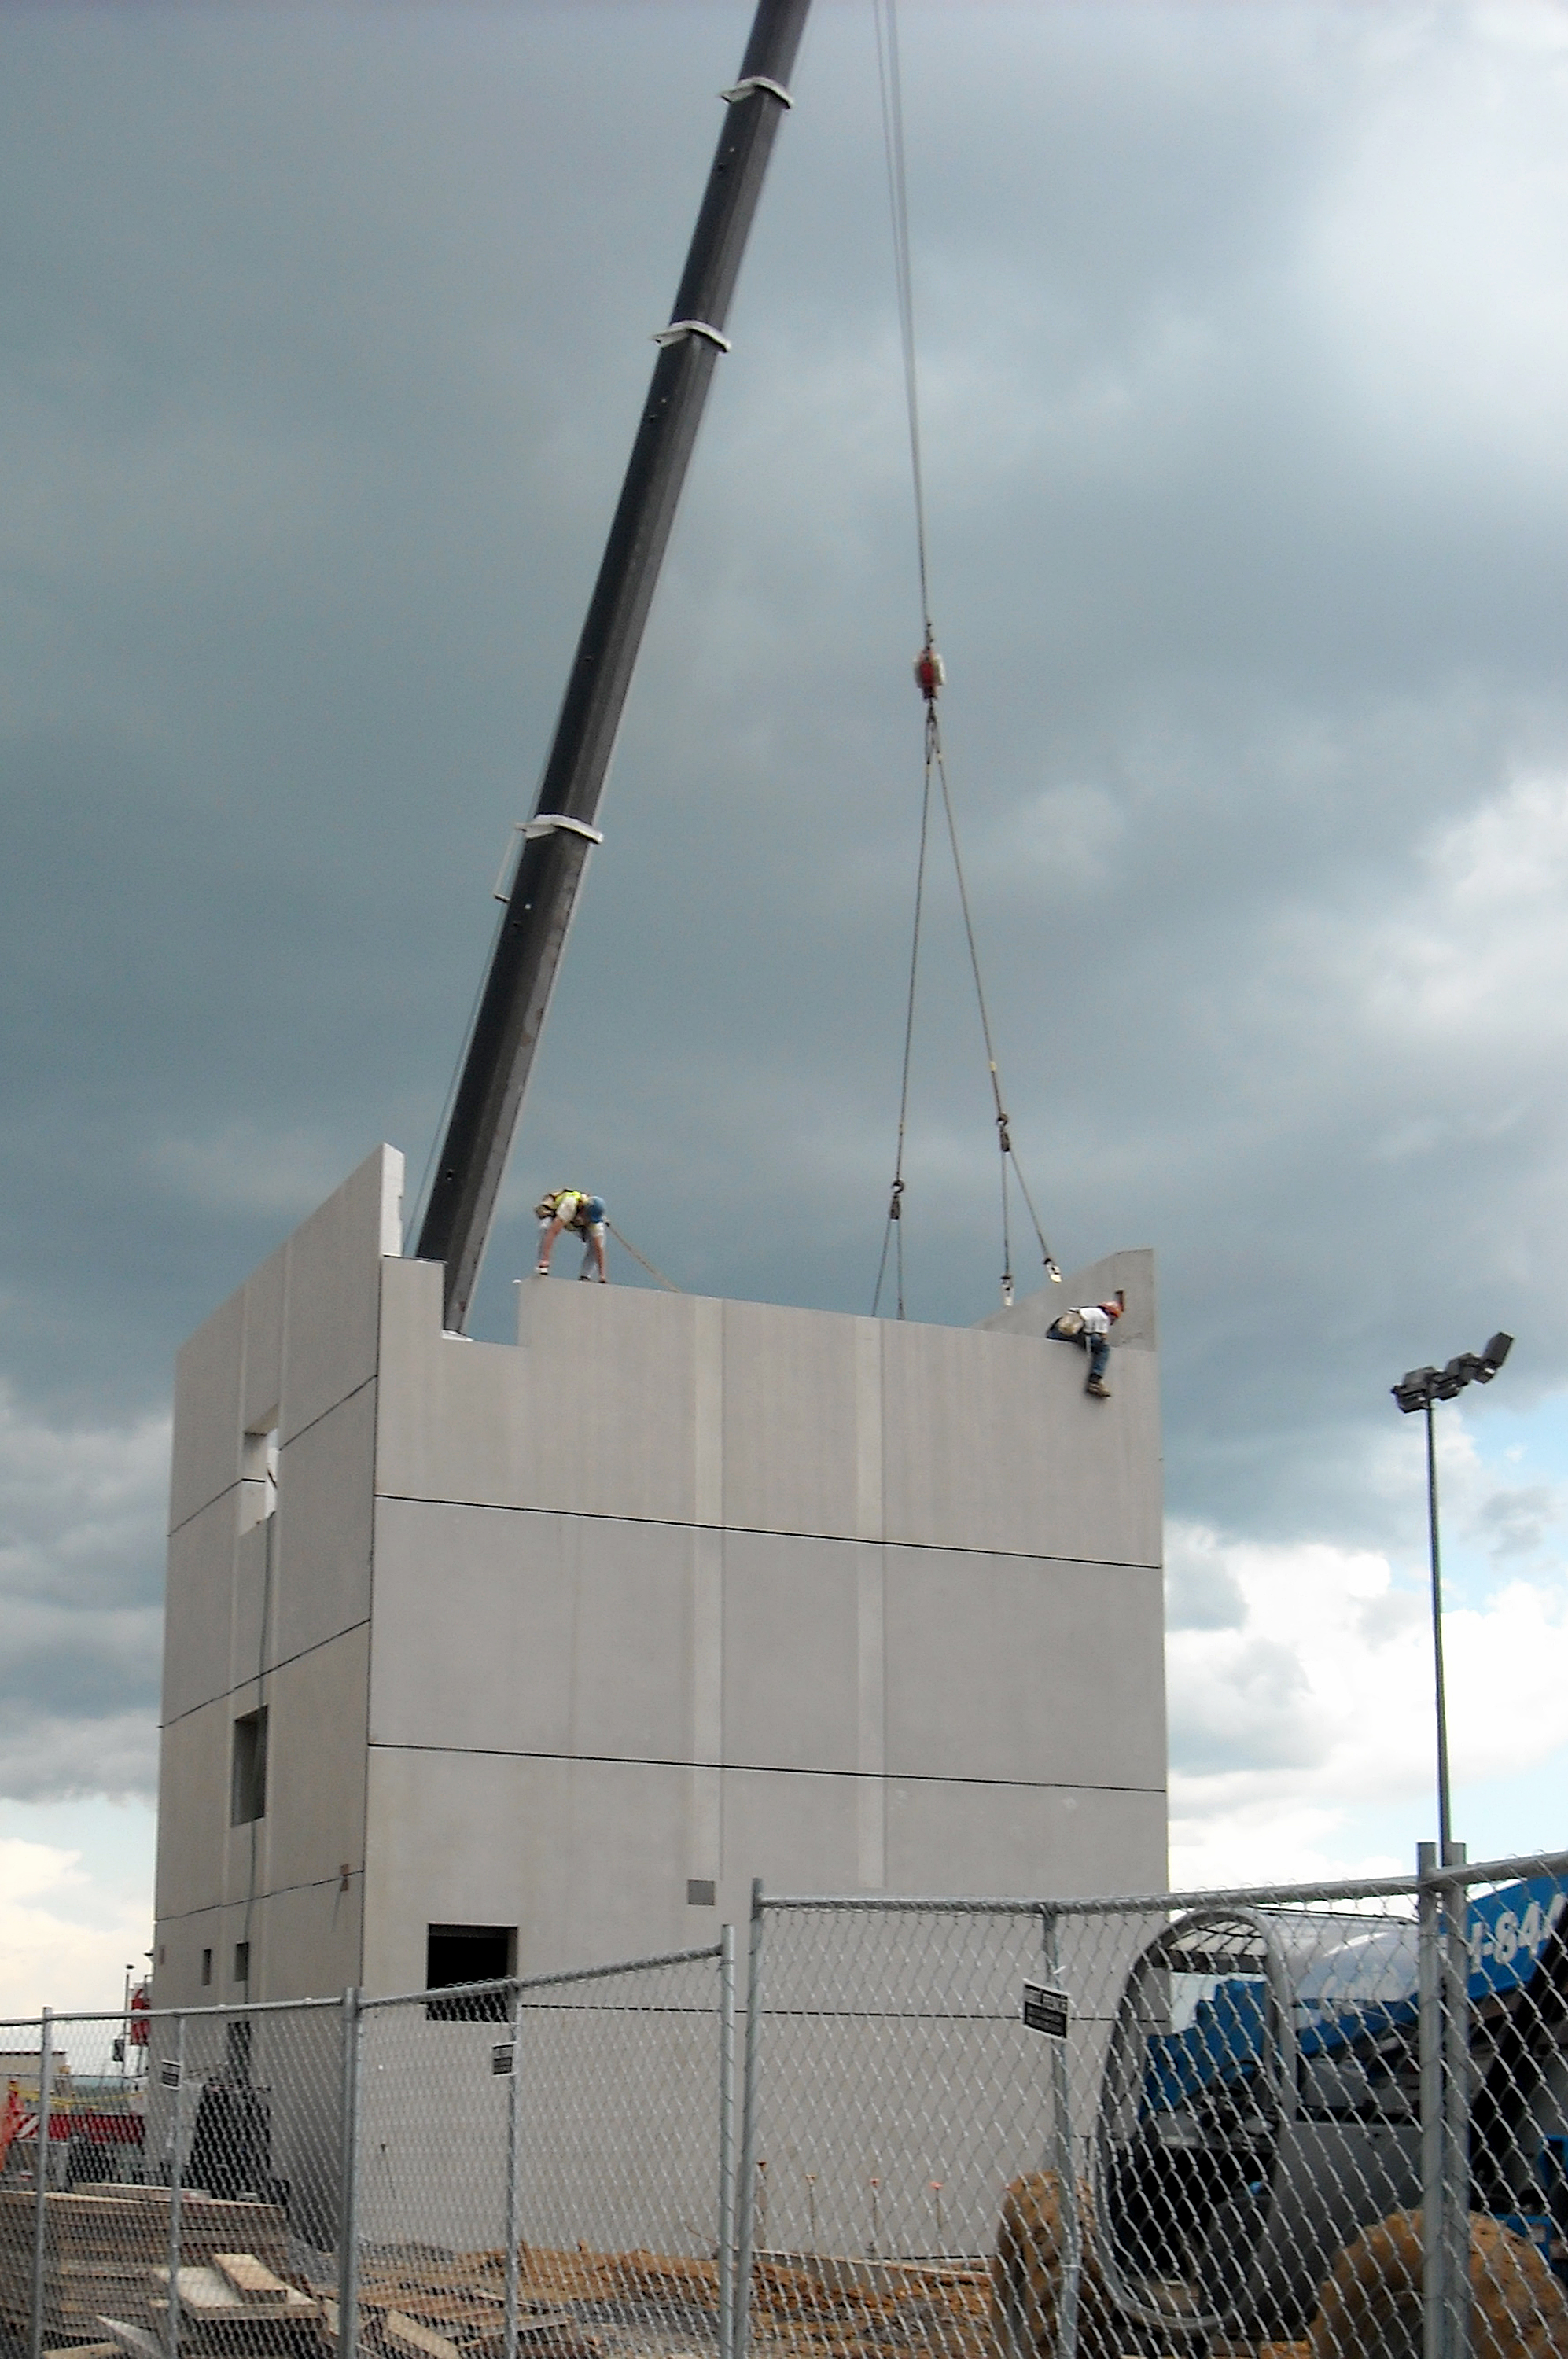 The Zartman team works on the air traffic control tower.